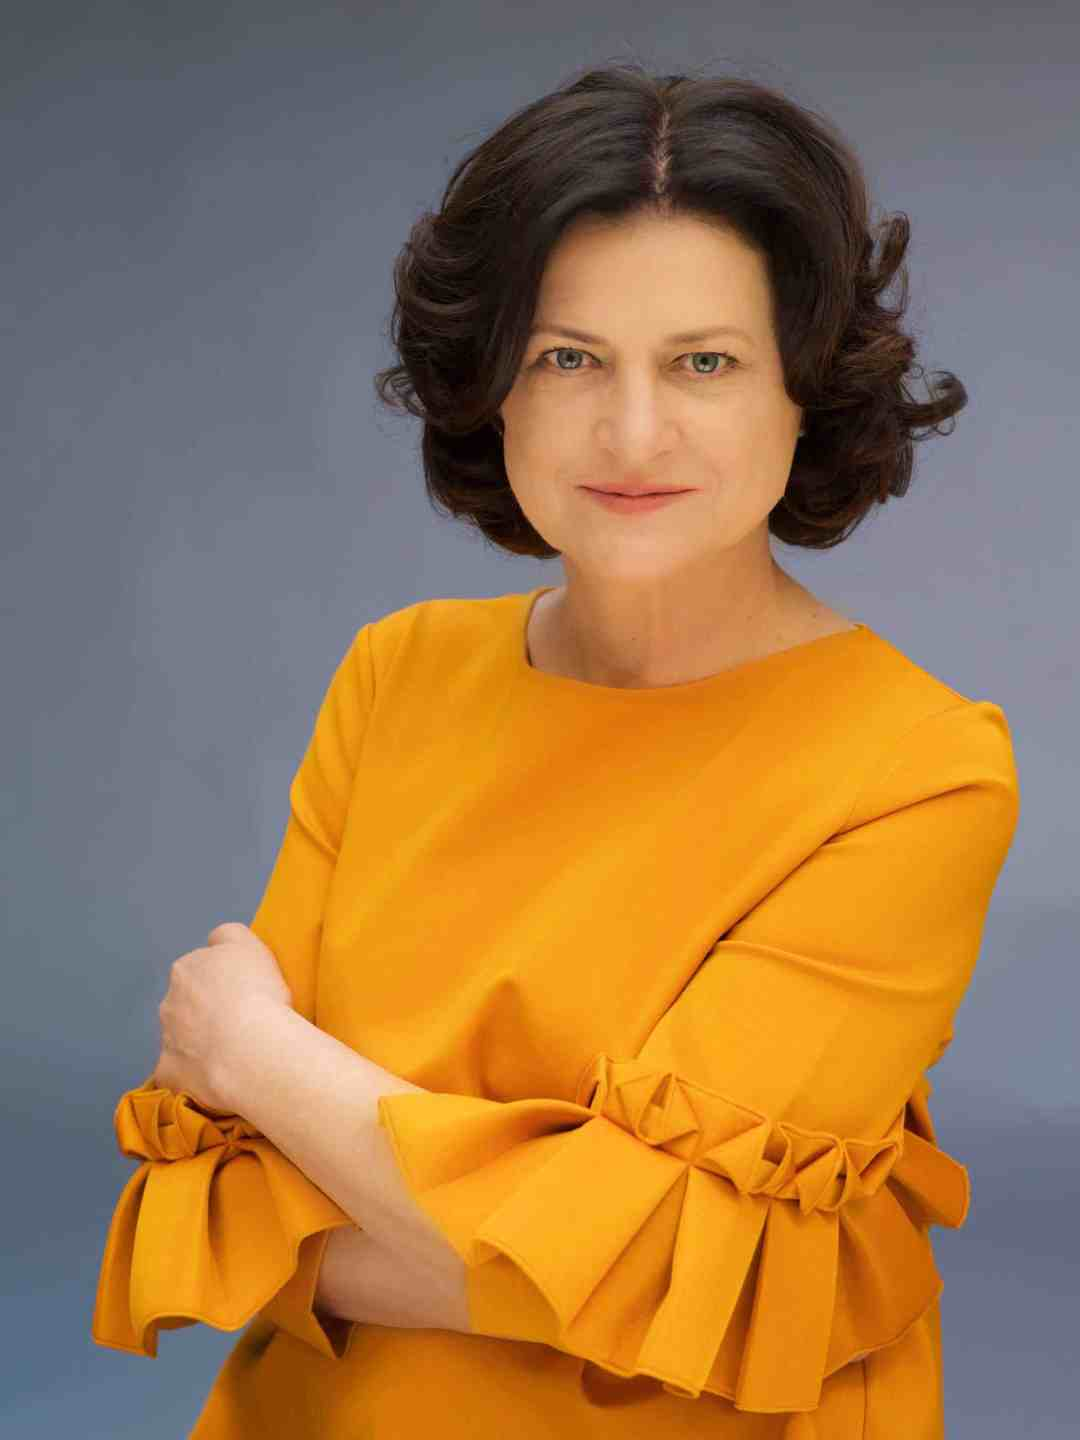 Diana Stomiene, photo by Audra Vau